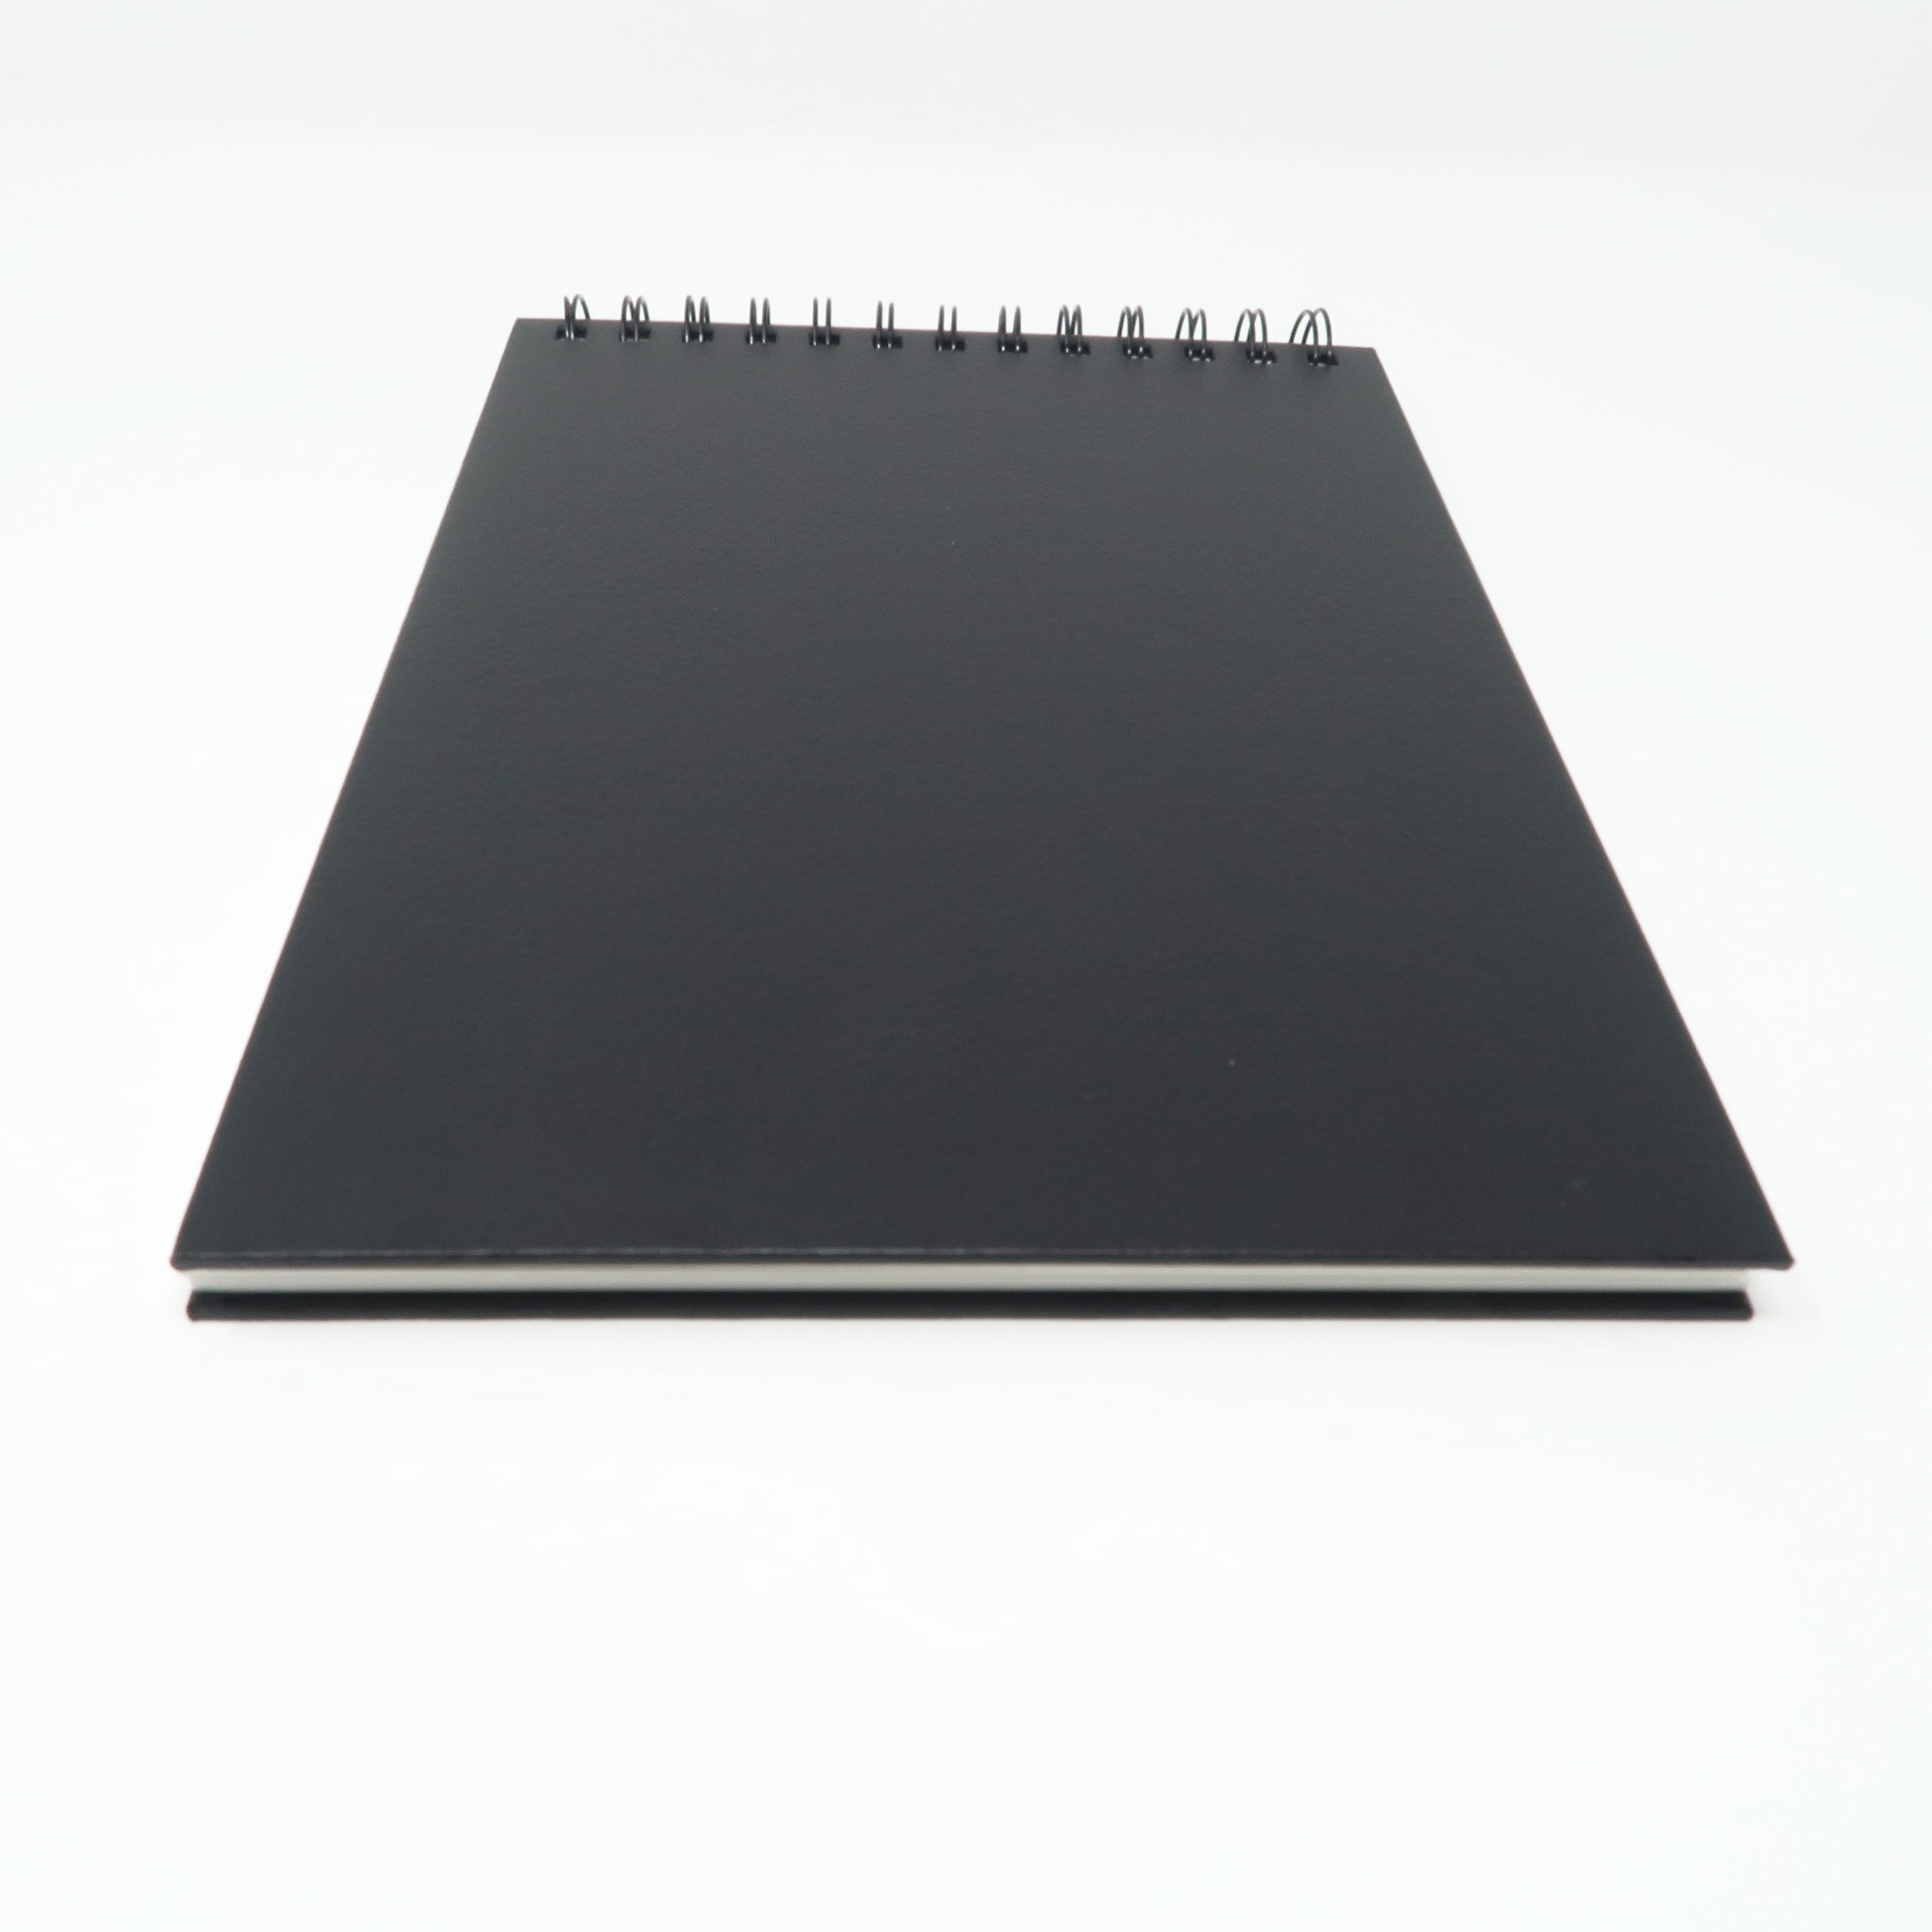 InstantCameraRental Guest Book 10%22 x 7%22 - Page Edge.jpg